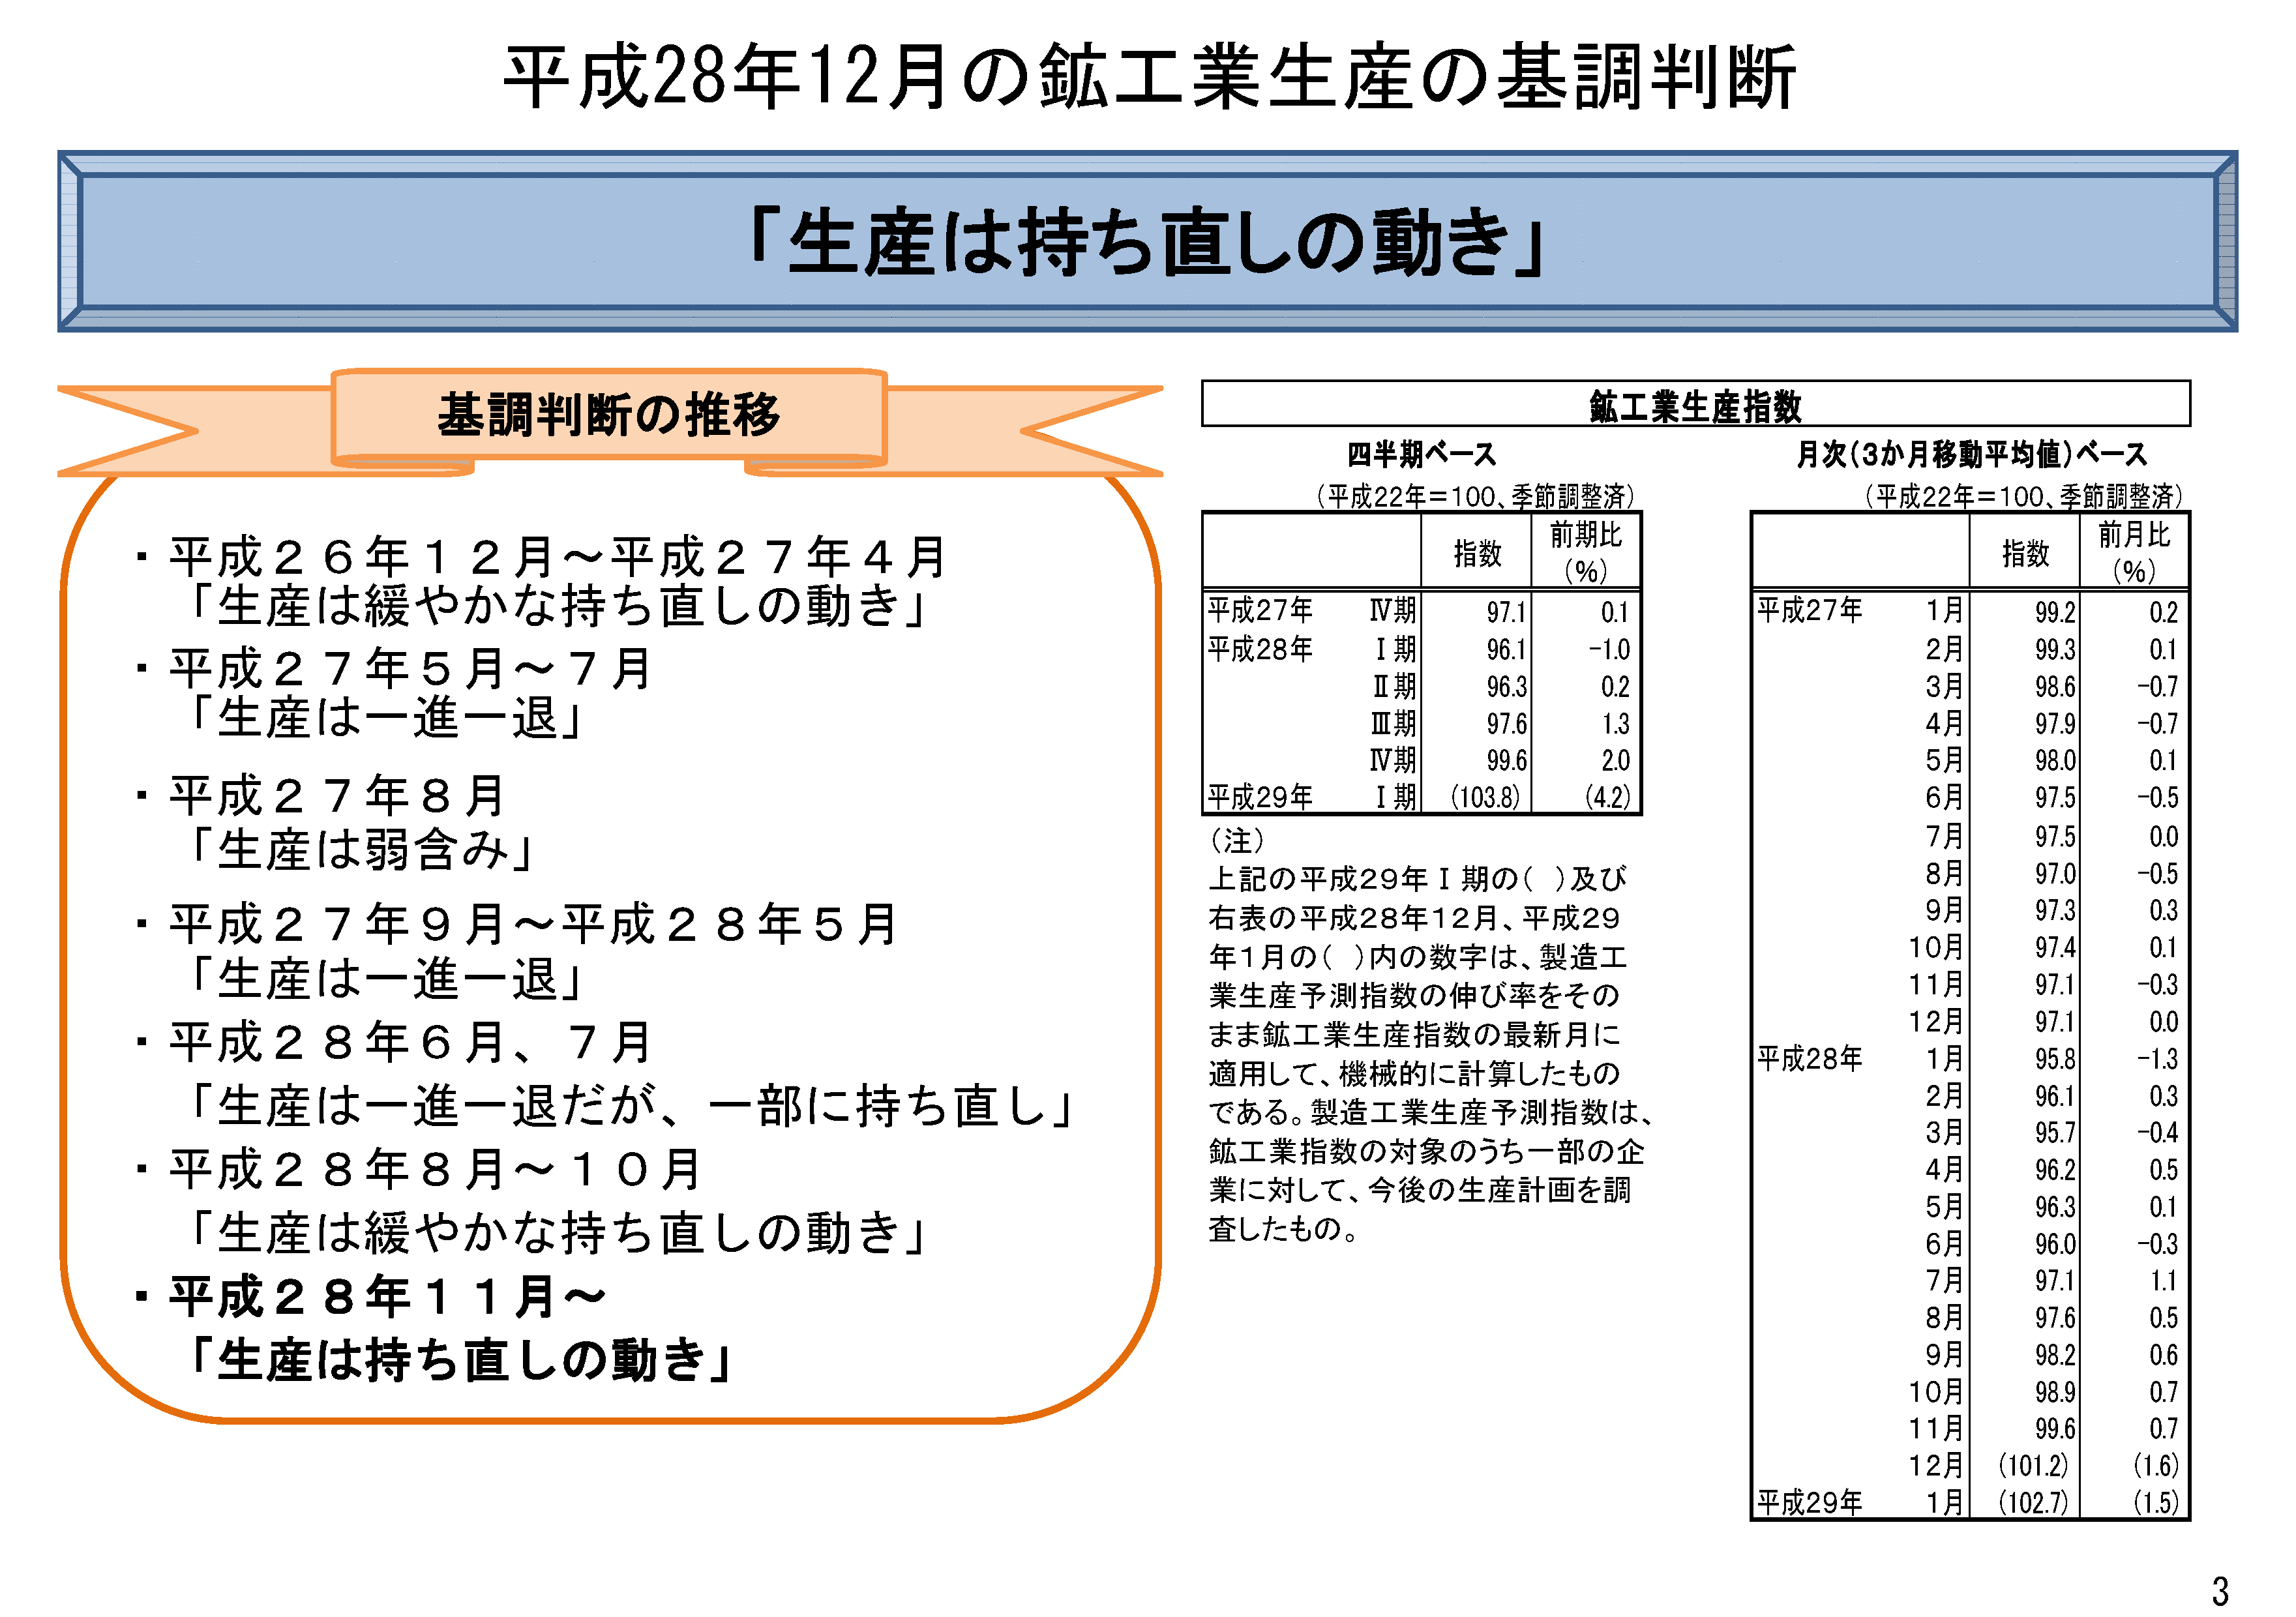 http://www.meti.go.jp/statistics/tyo/iip/result/pdf/reference/slide/tw_zu1612s-19-4.png